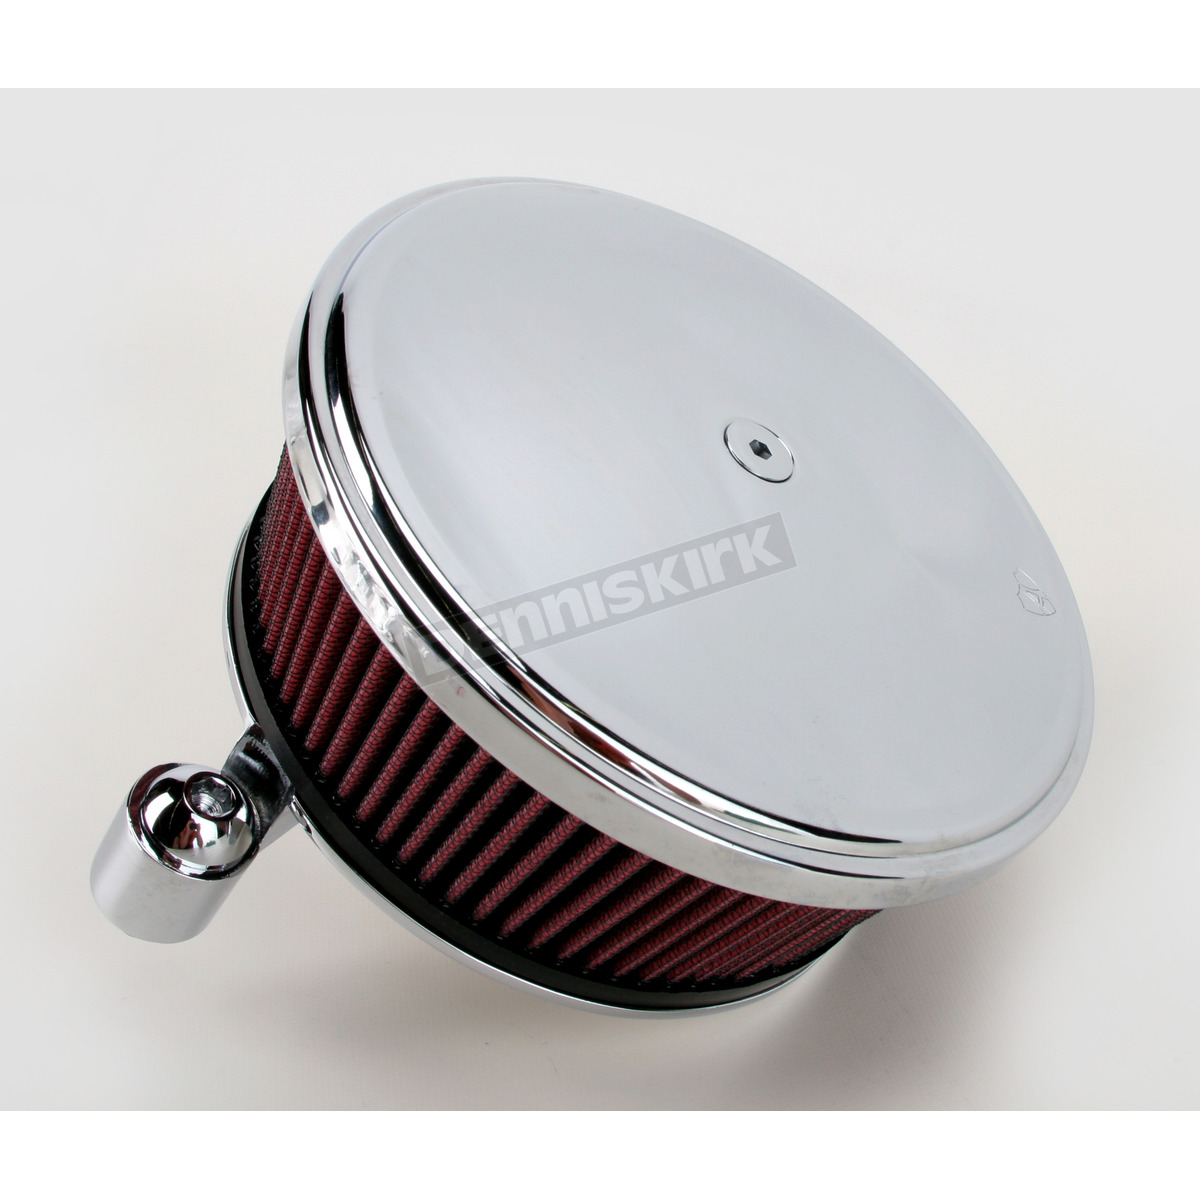 Chrome Big Sucker Stage II Performance Air Cleaner Kit w/Smooth Steel Cover  for CV Carb - 18-790